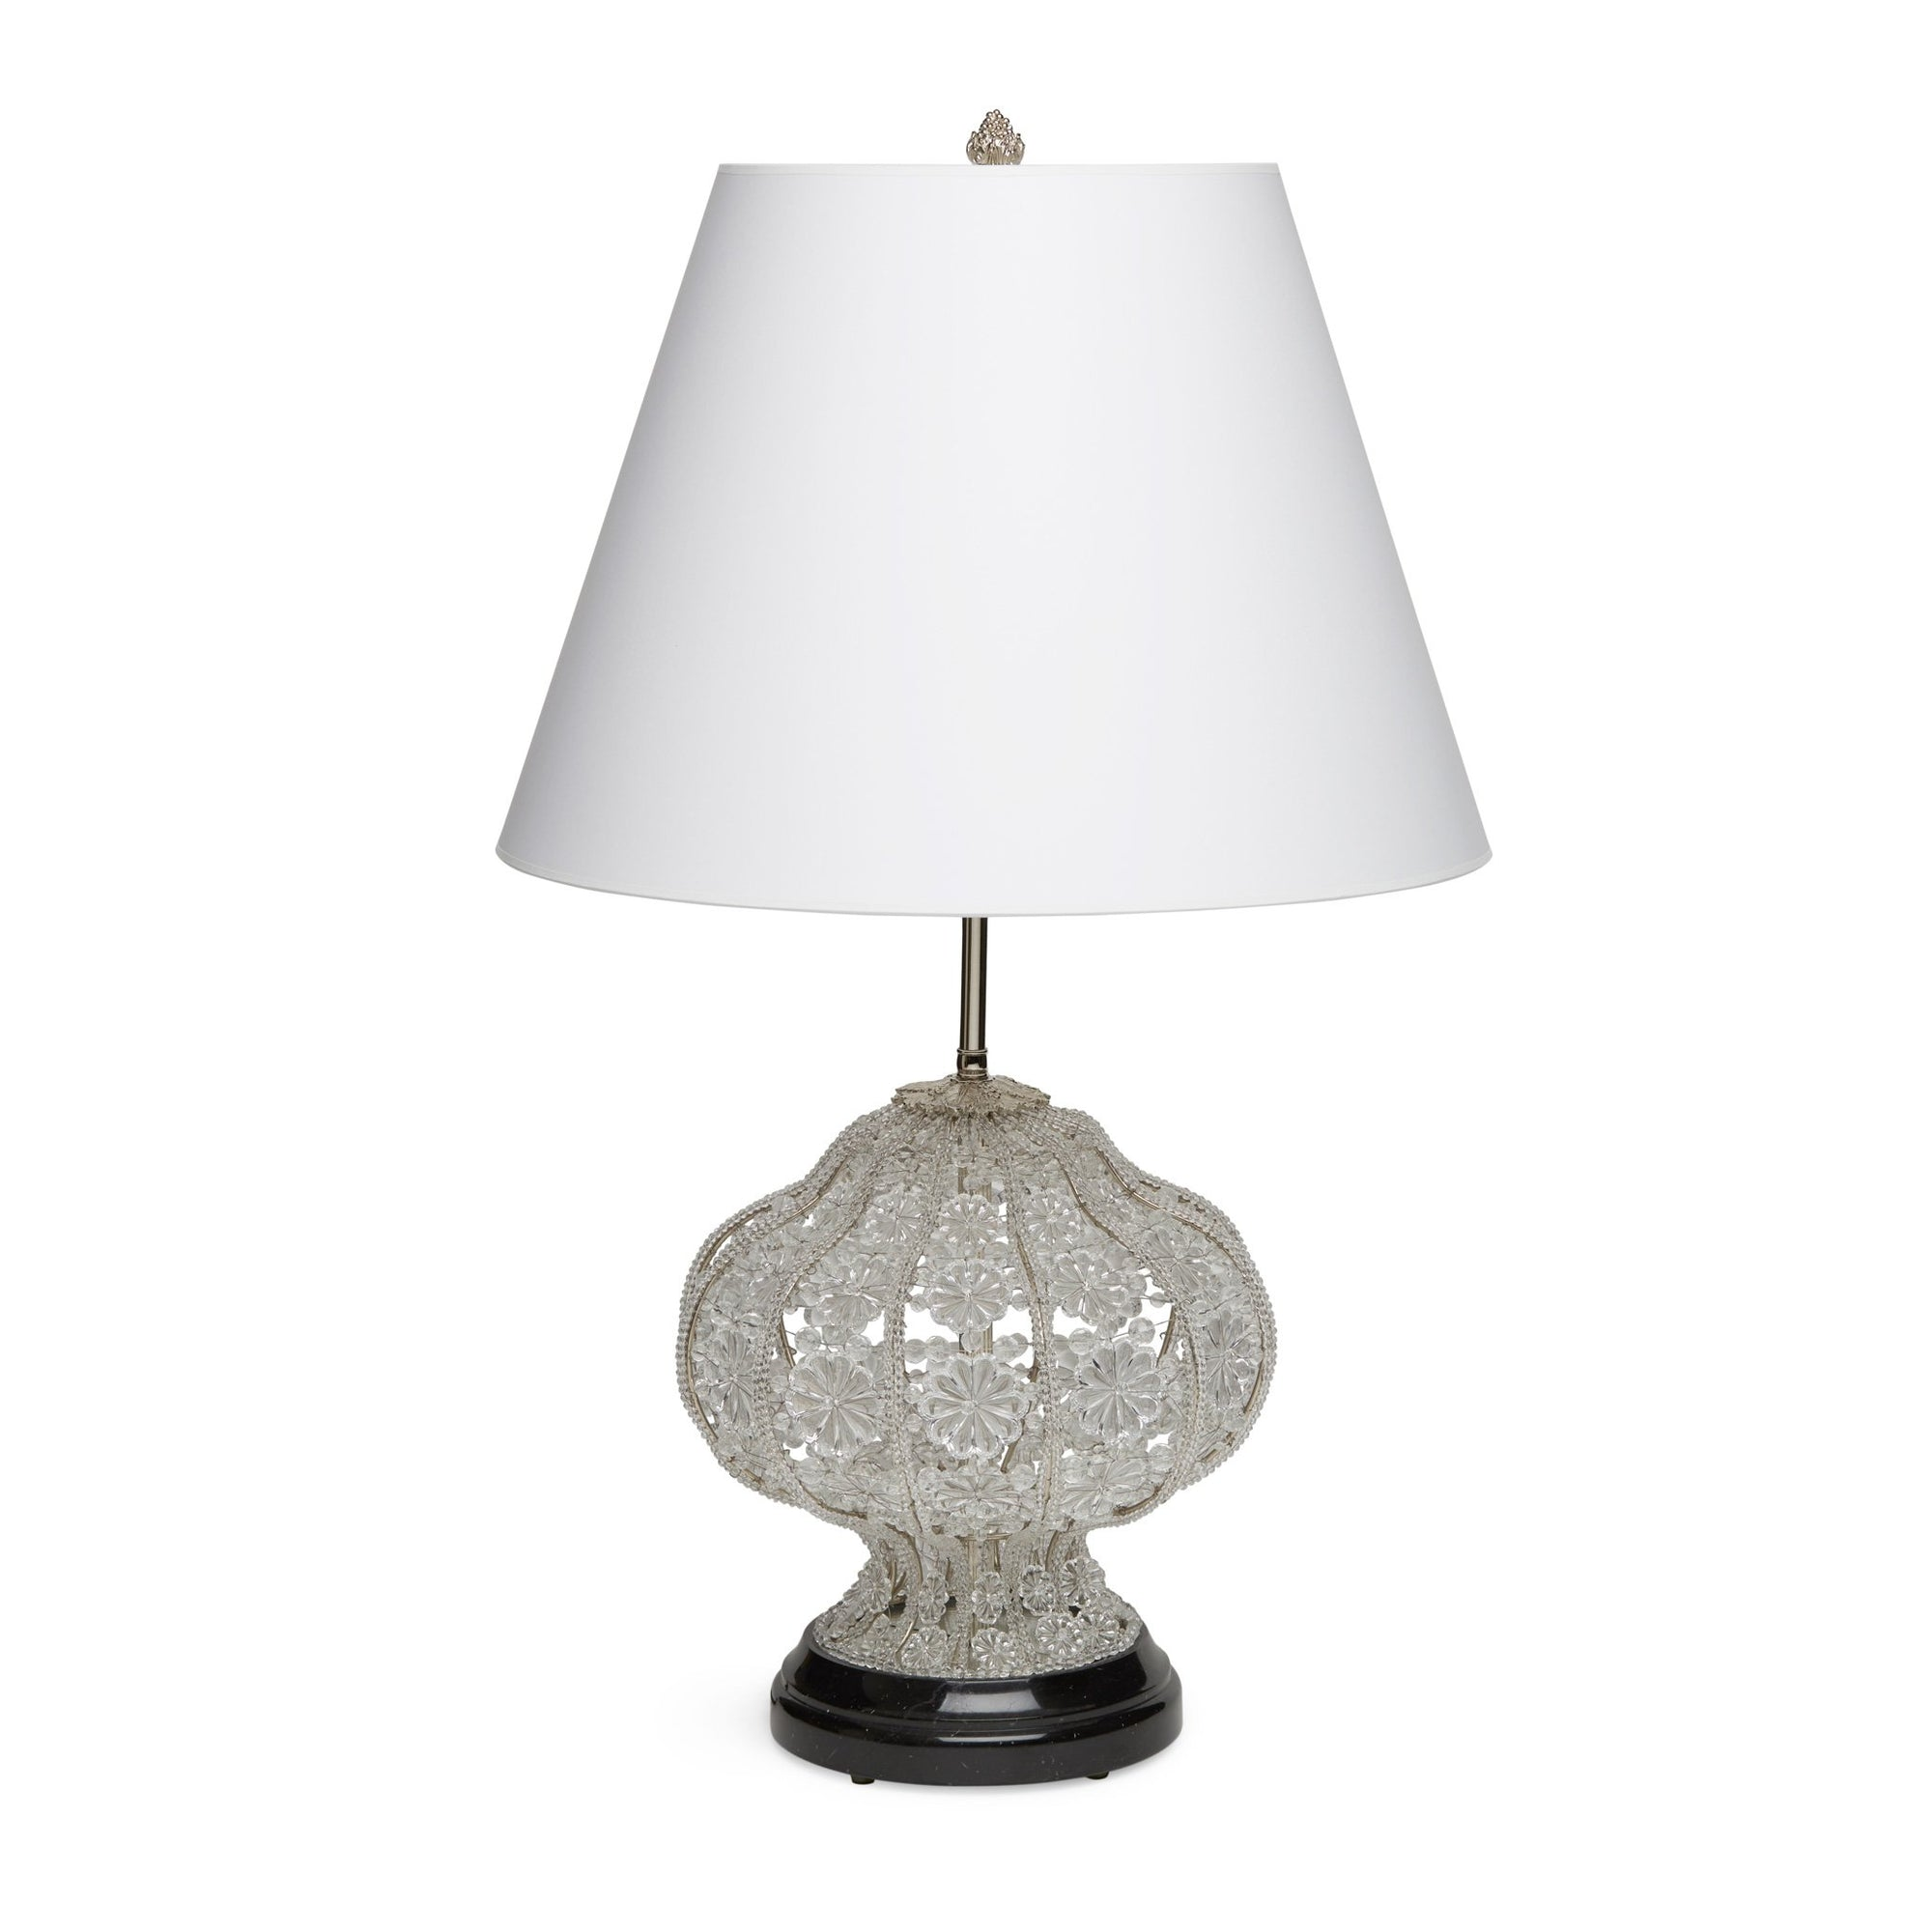 7123-TBLE-NEMA-PN Sherle Wagner International Crystal Table Lamp Small in Malachite